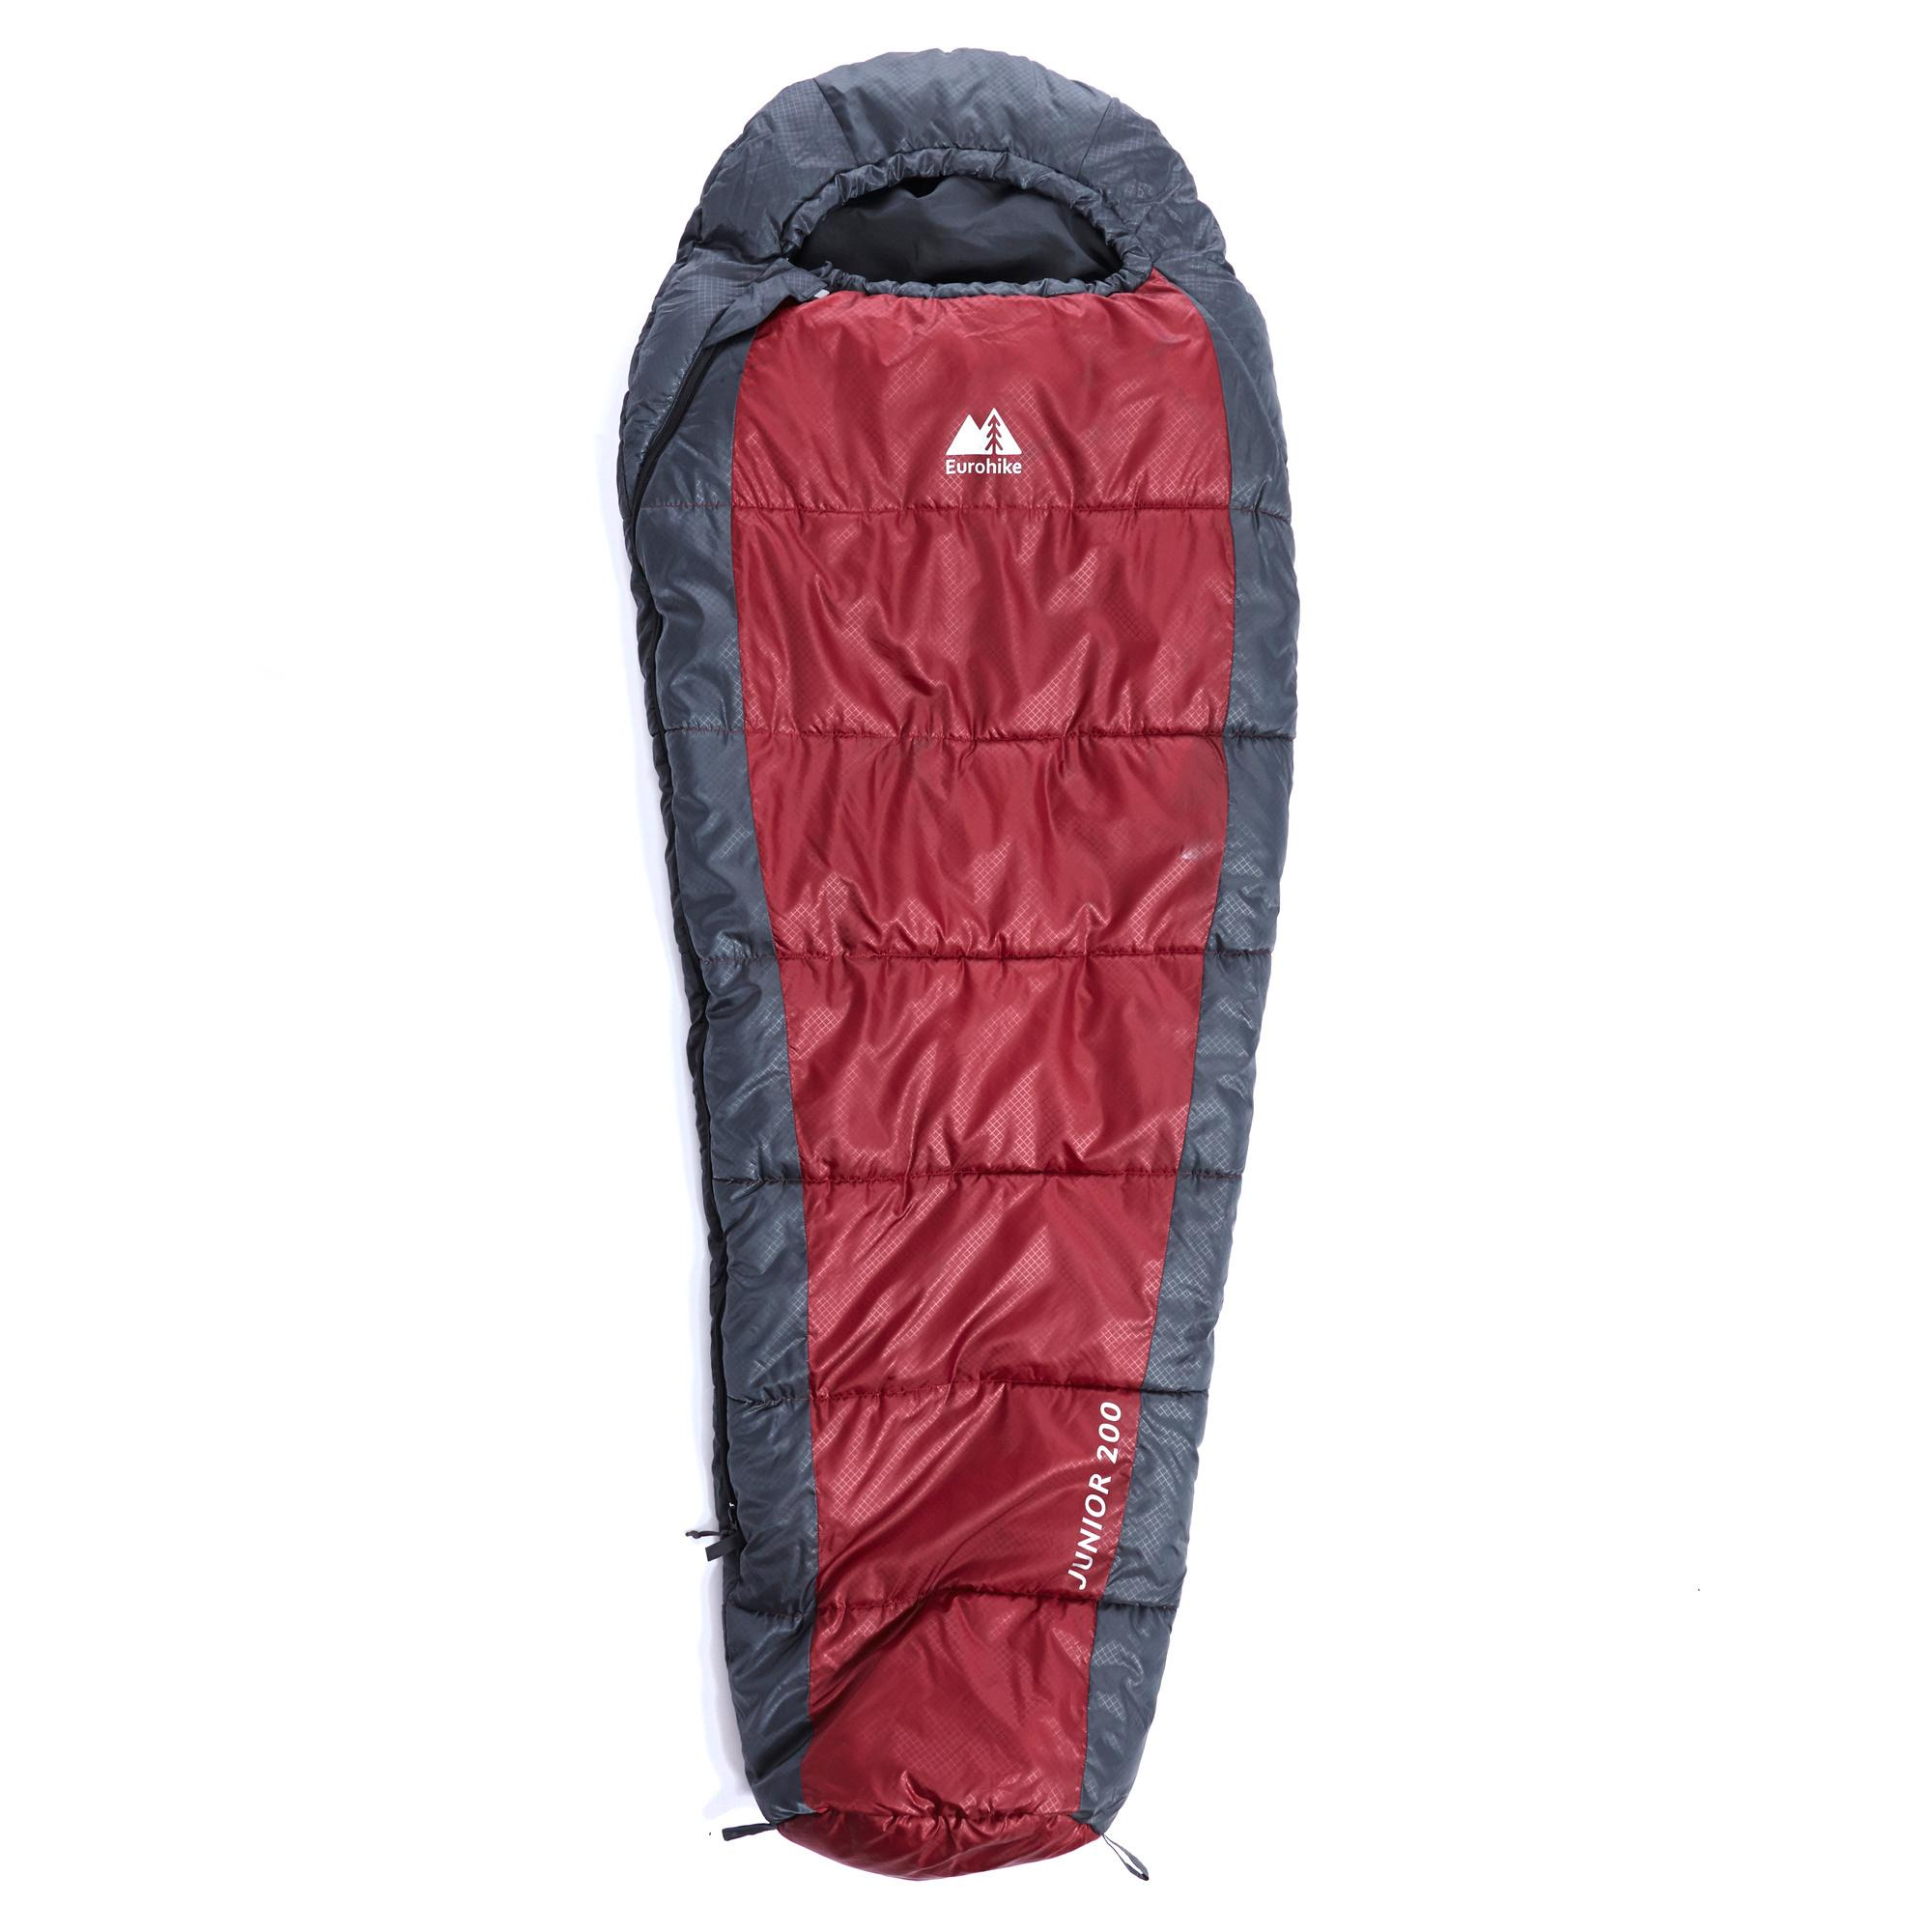 EUROHIKE Junior 200 Girls Mummy Sleeping Bag - Red | eBay